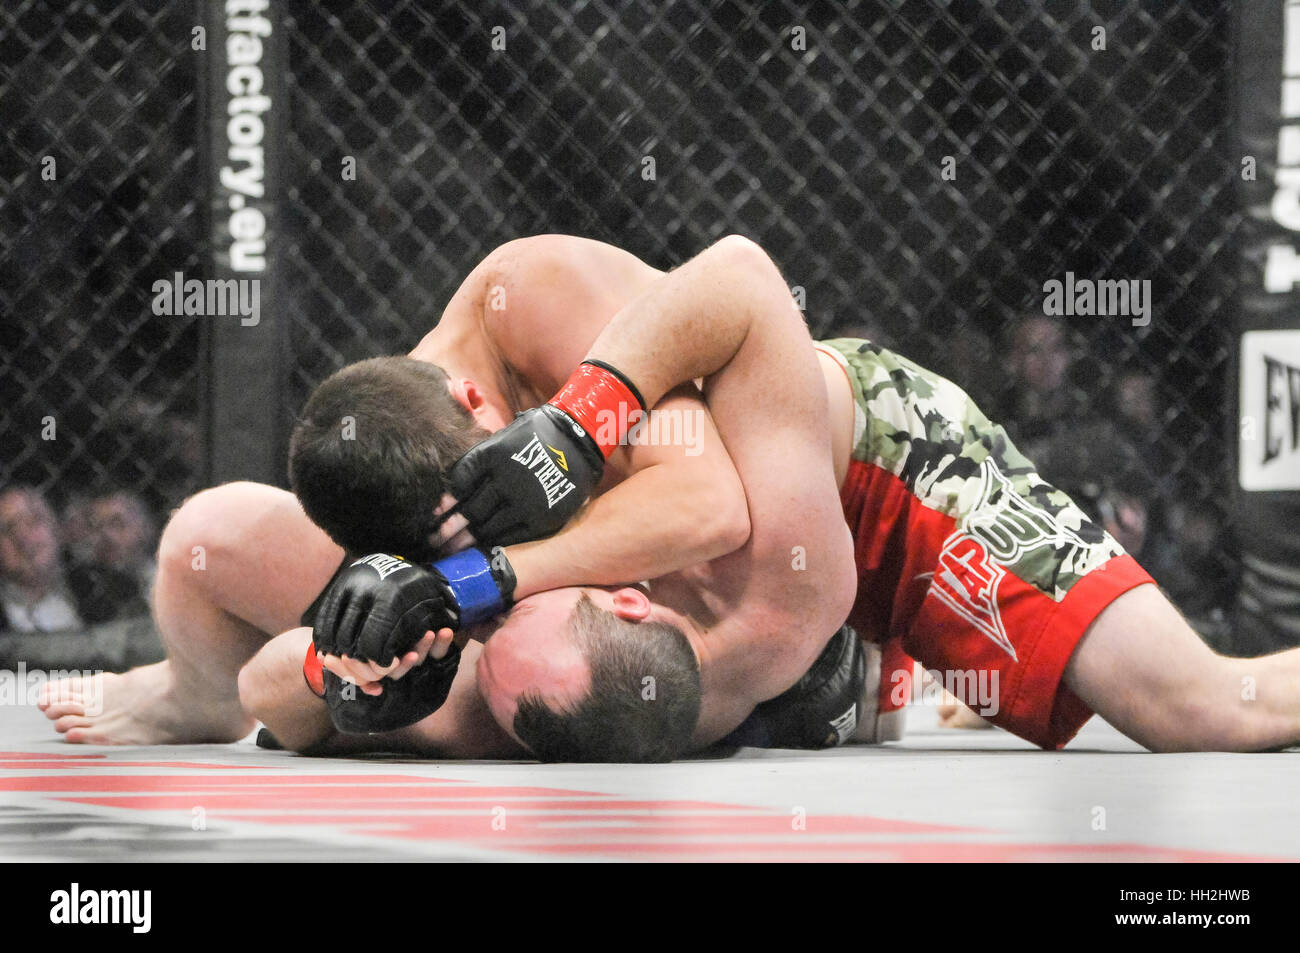 two mma cage fighers